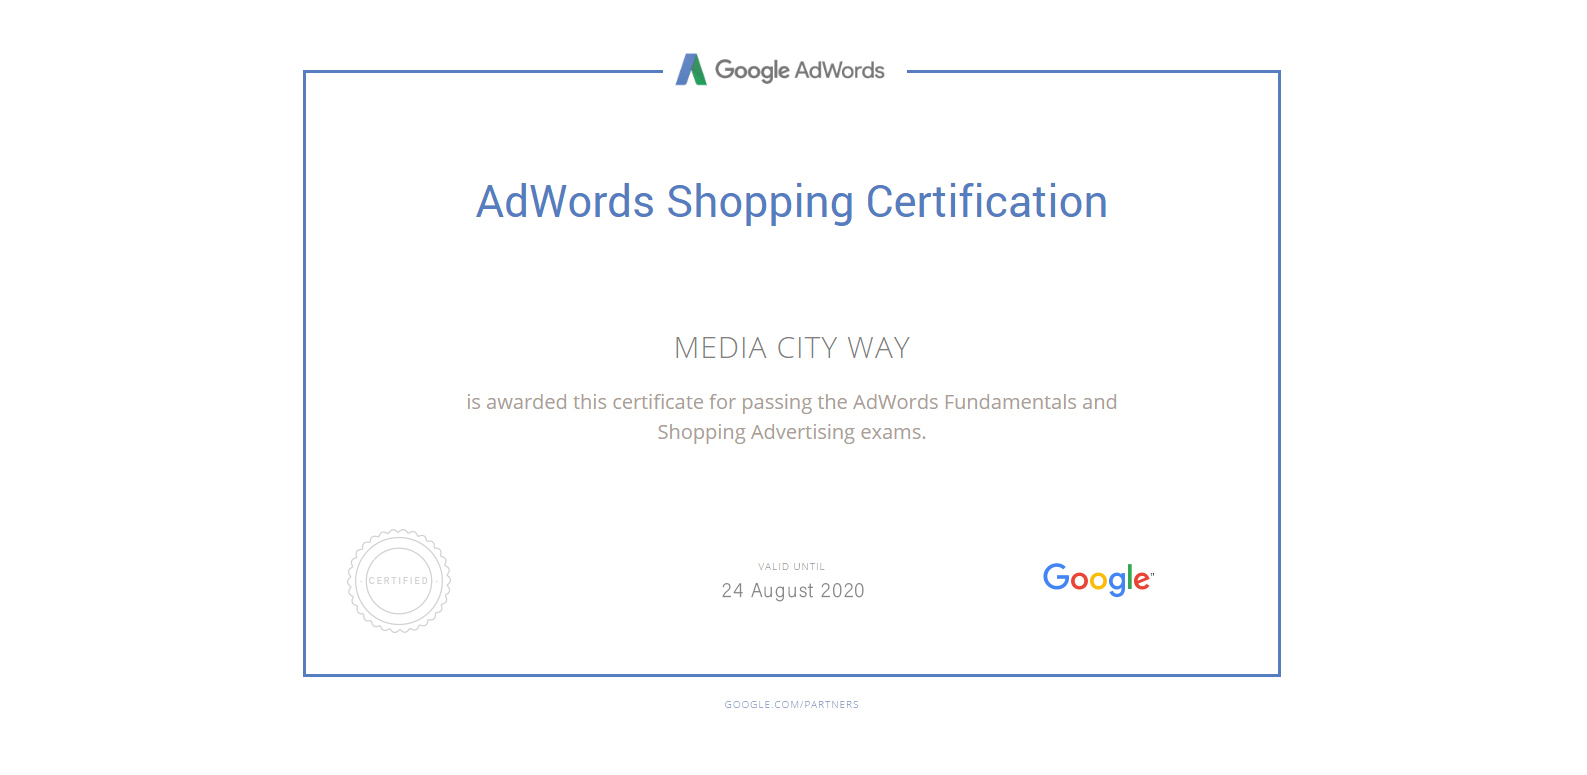 Adwords Shopping Certificate